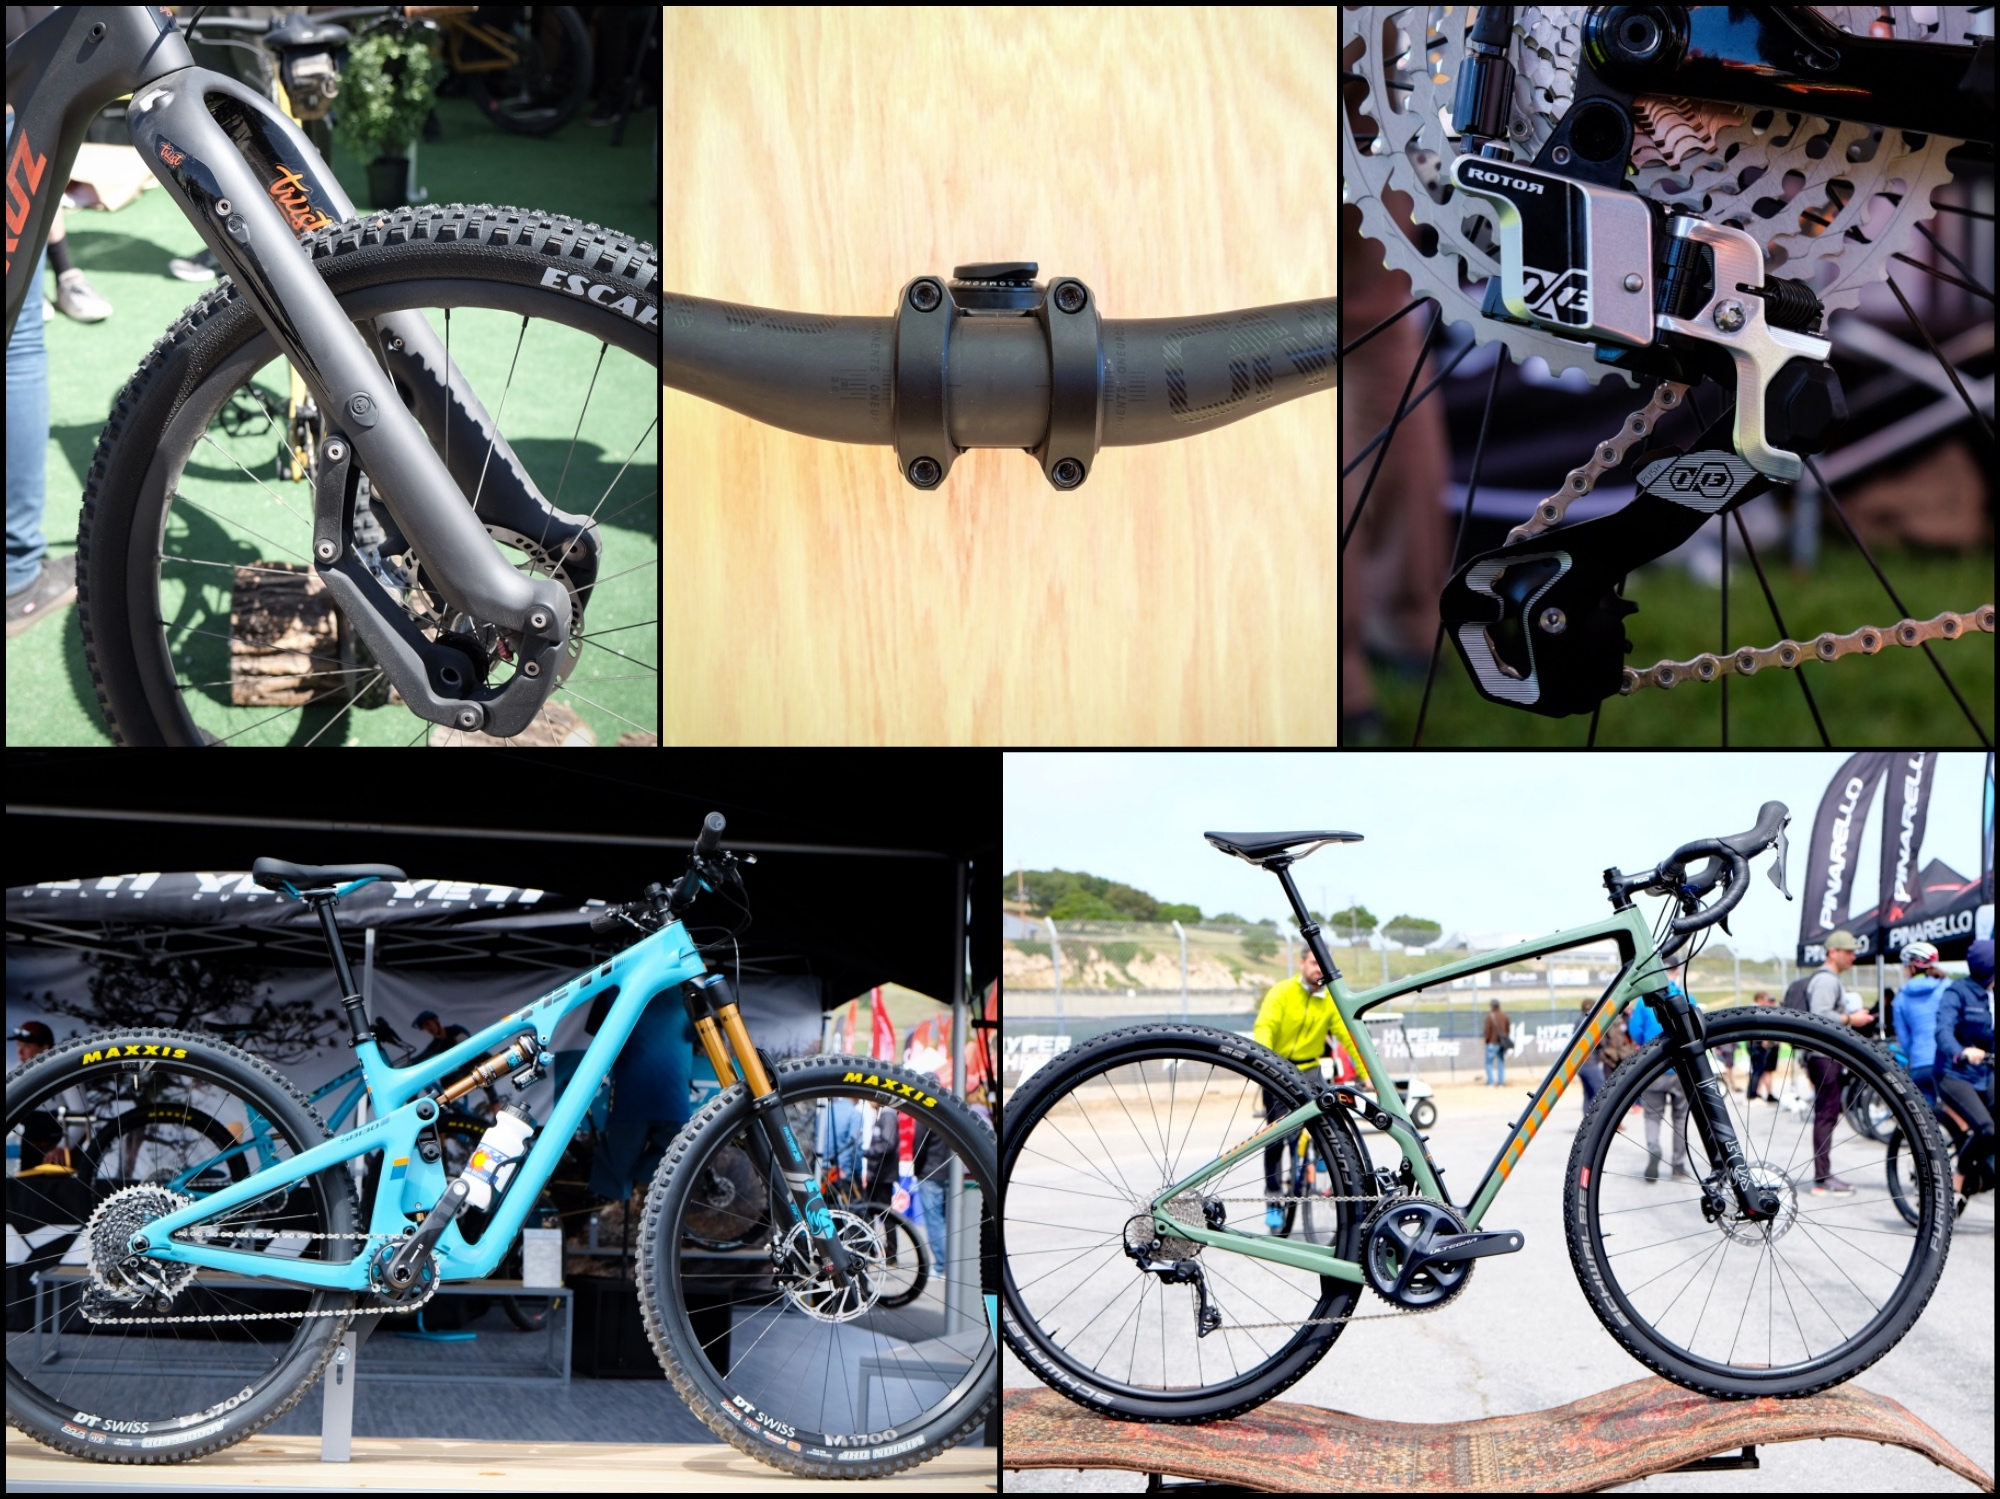 Sea Otter: Josh Patterson's Top 5 New Products